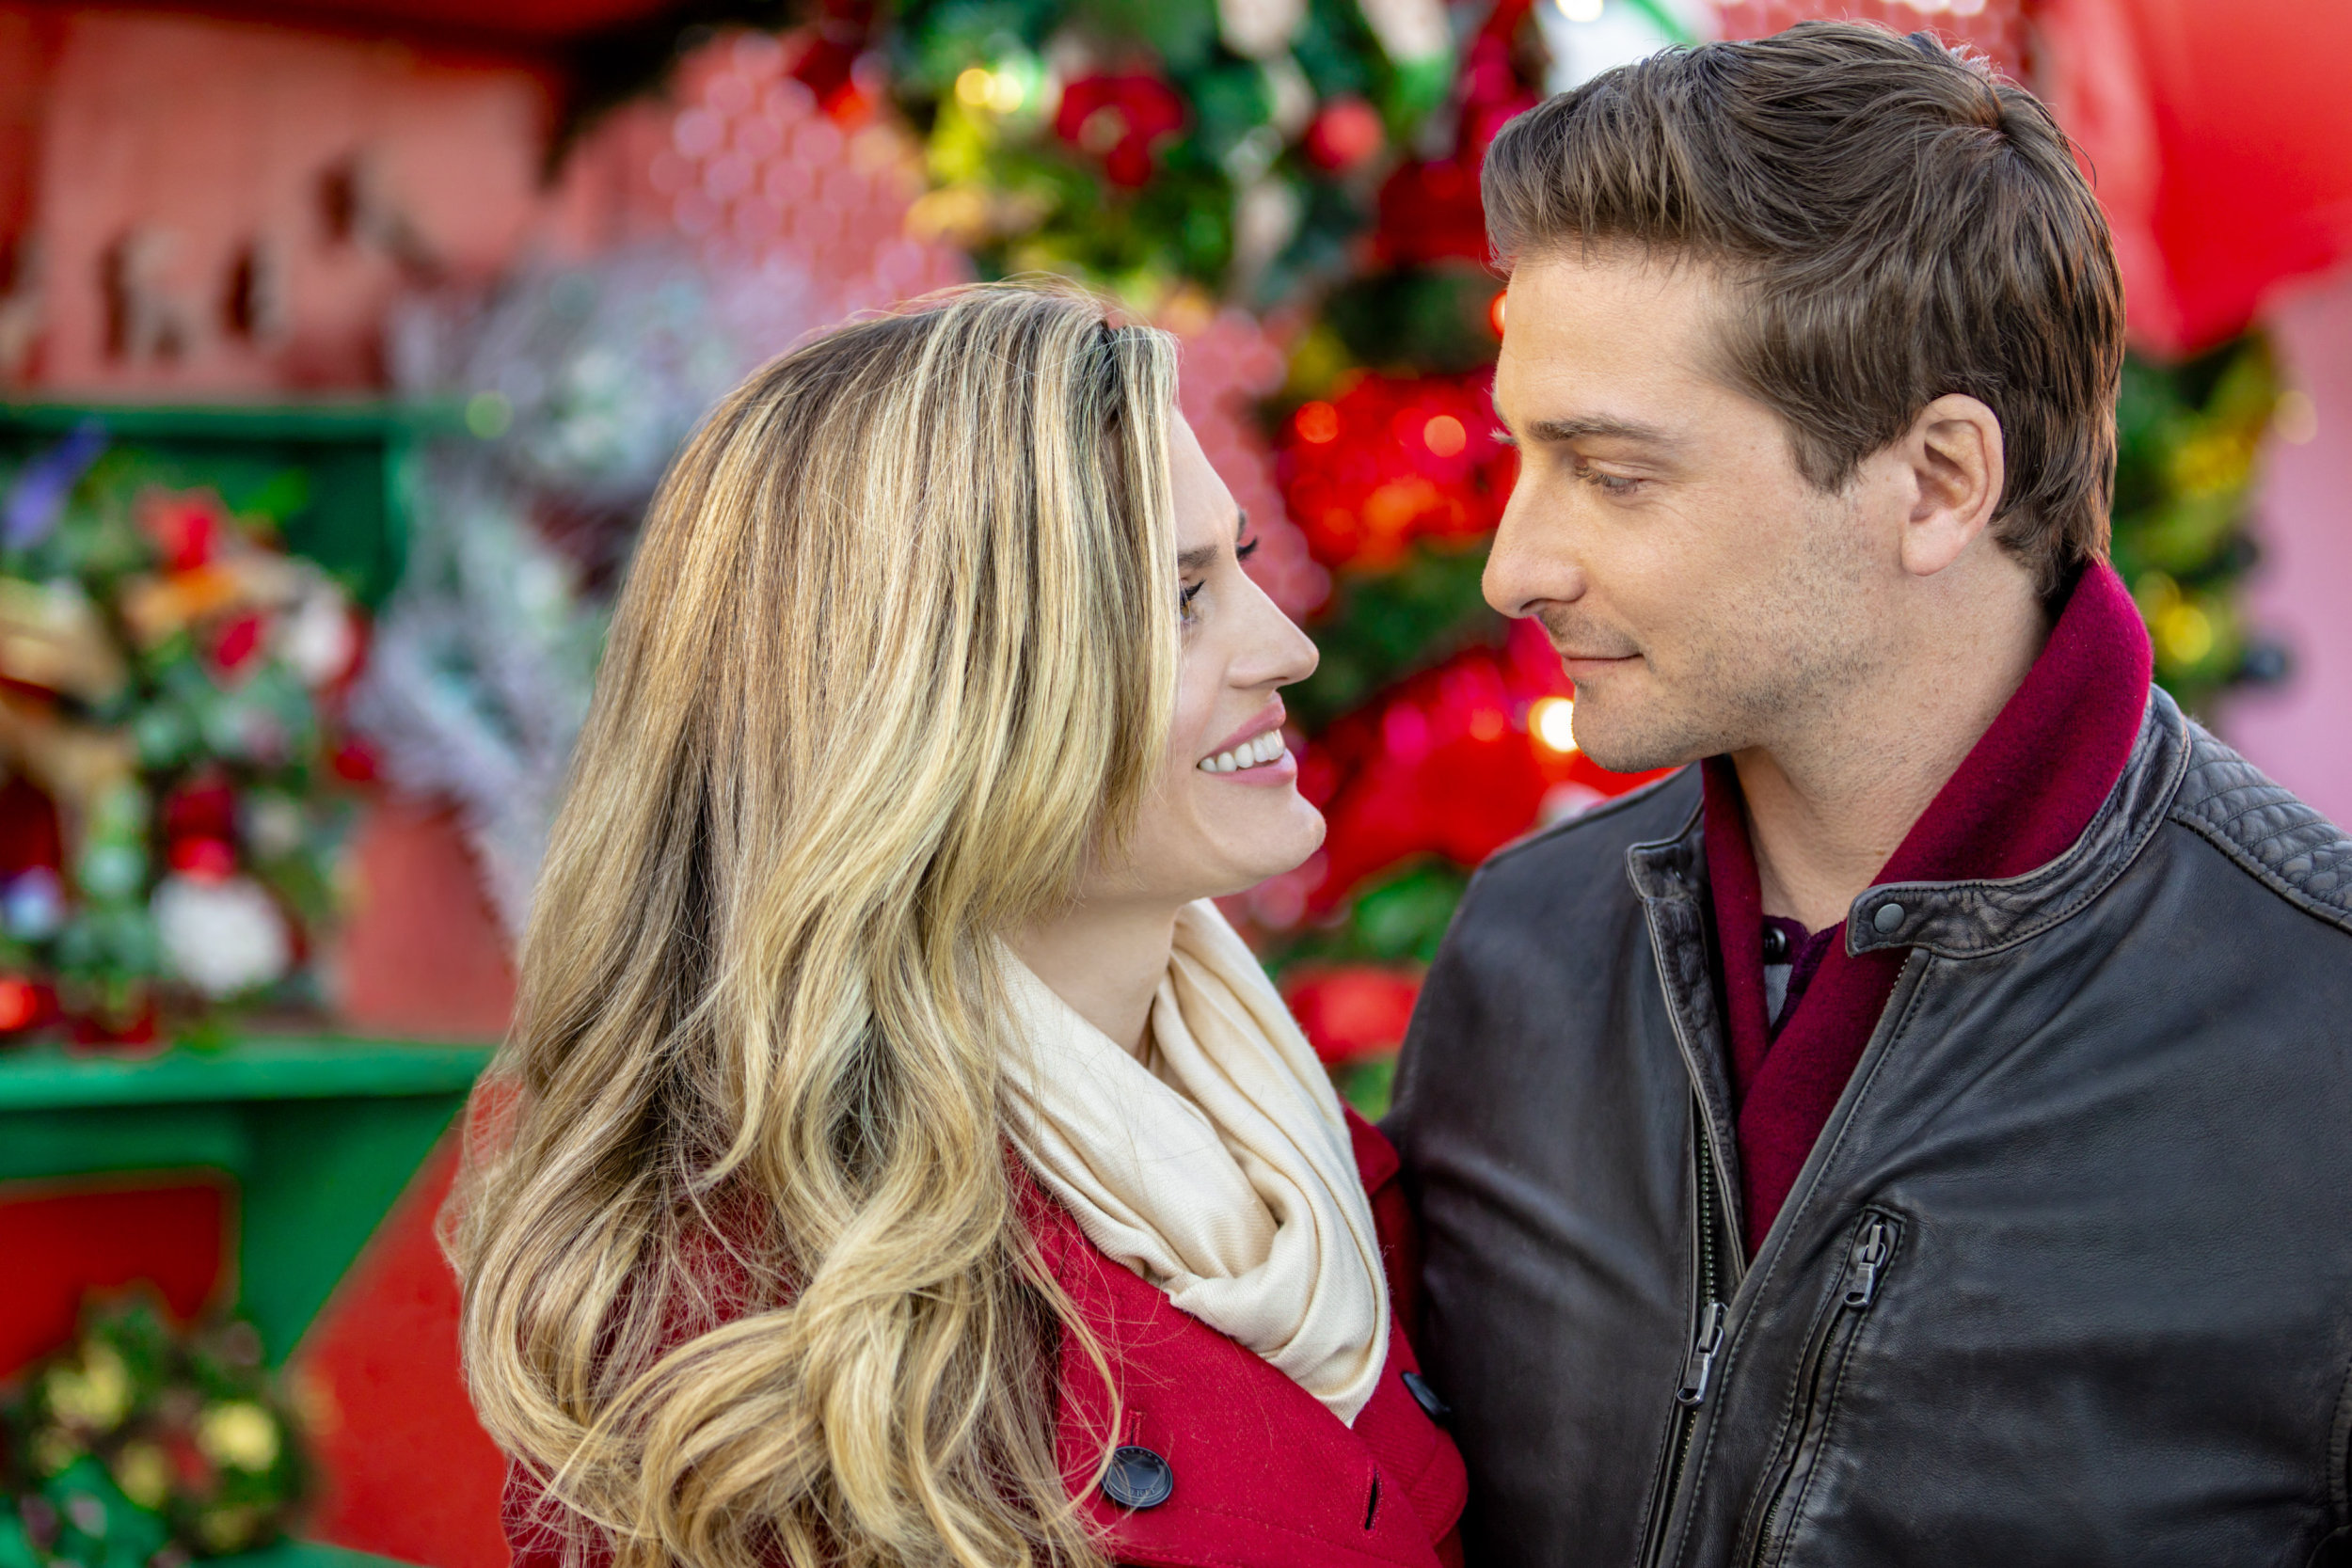 2018 prime video hallmark Christmas movies countdown – man and woman smiling at each other